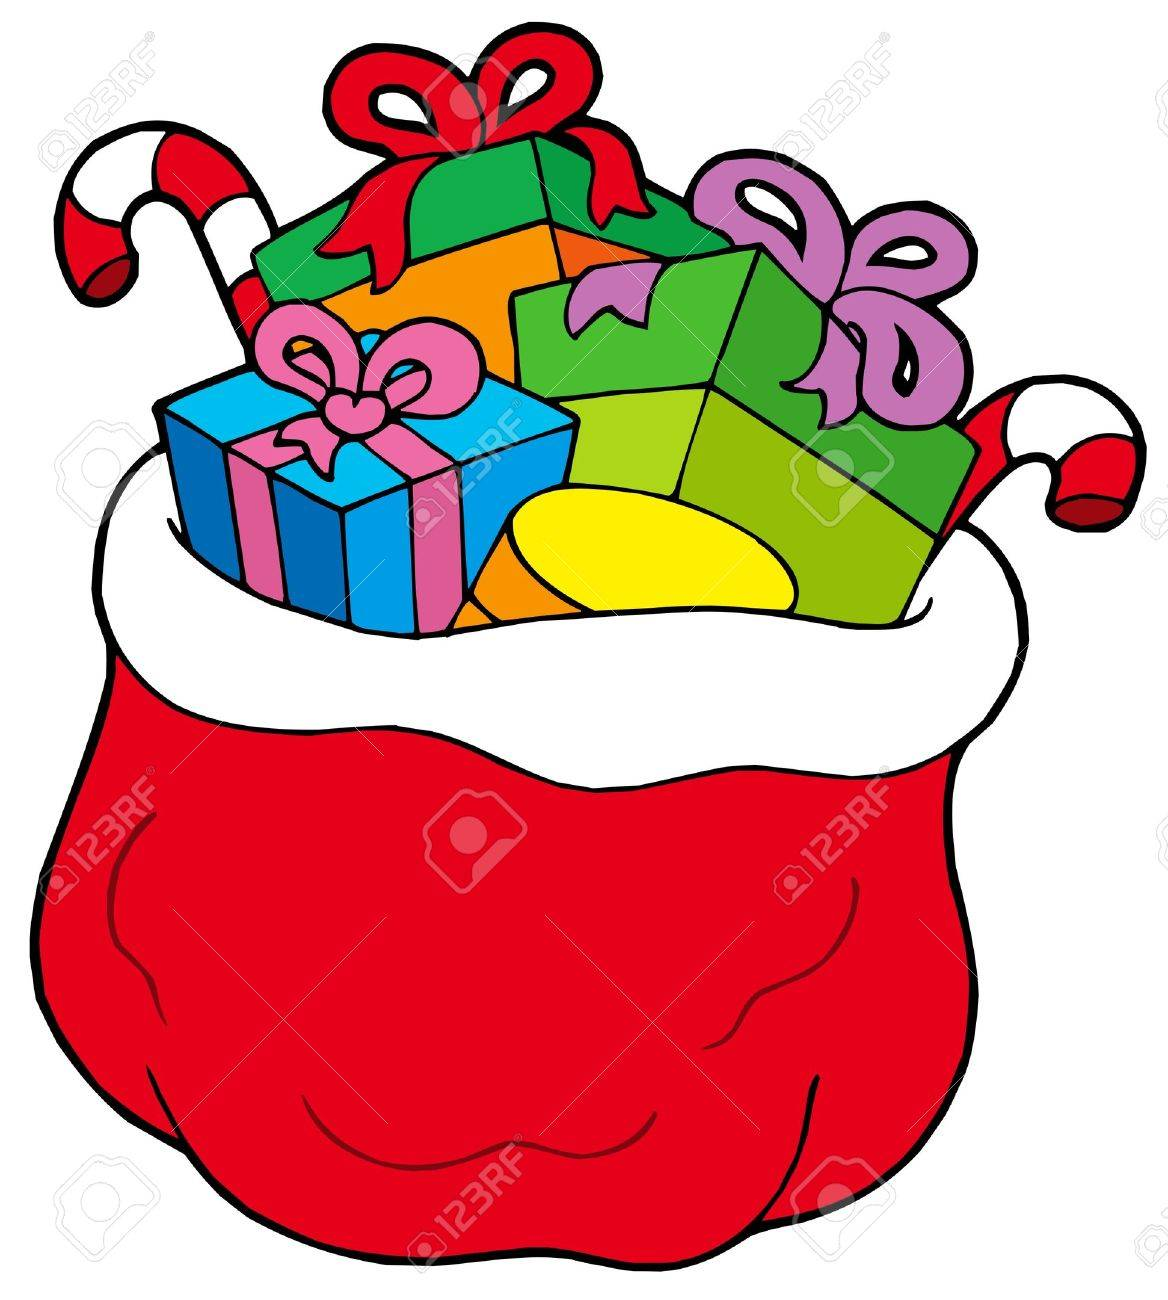 Christmas bag with gifts - vector illustration. Stock Vector - 5621152